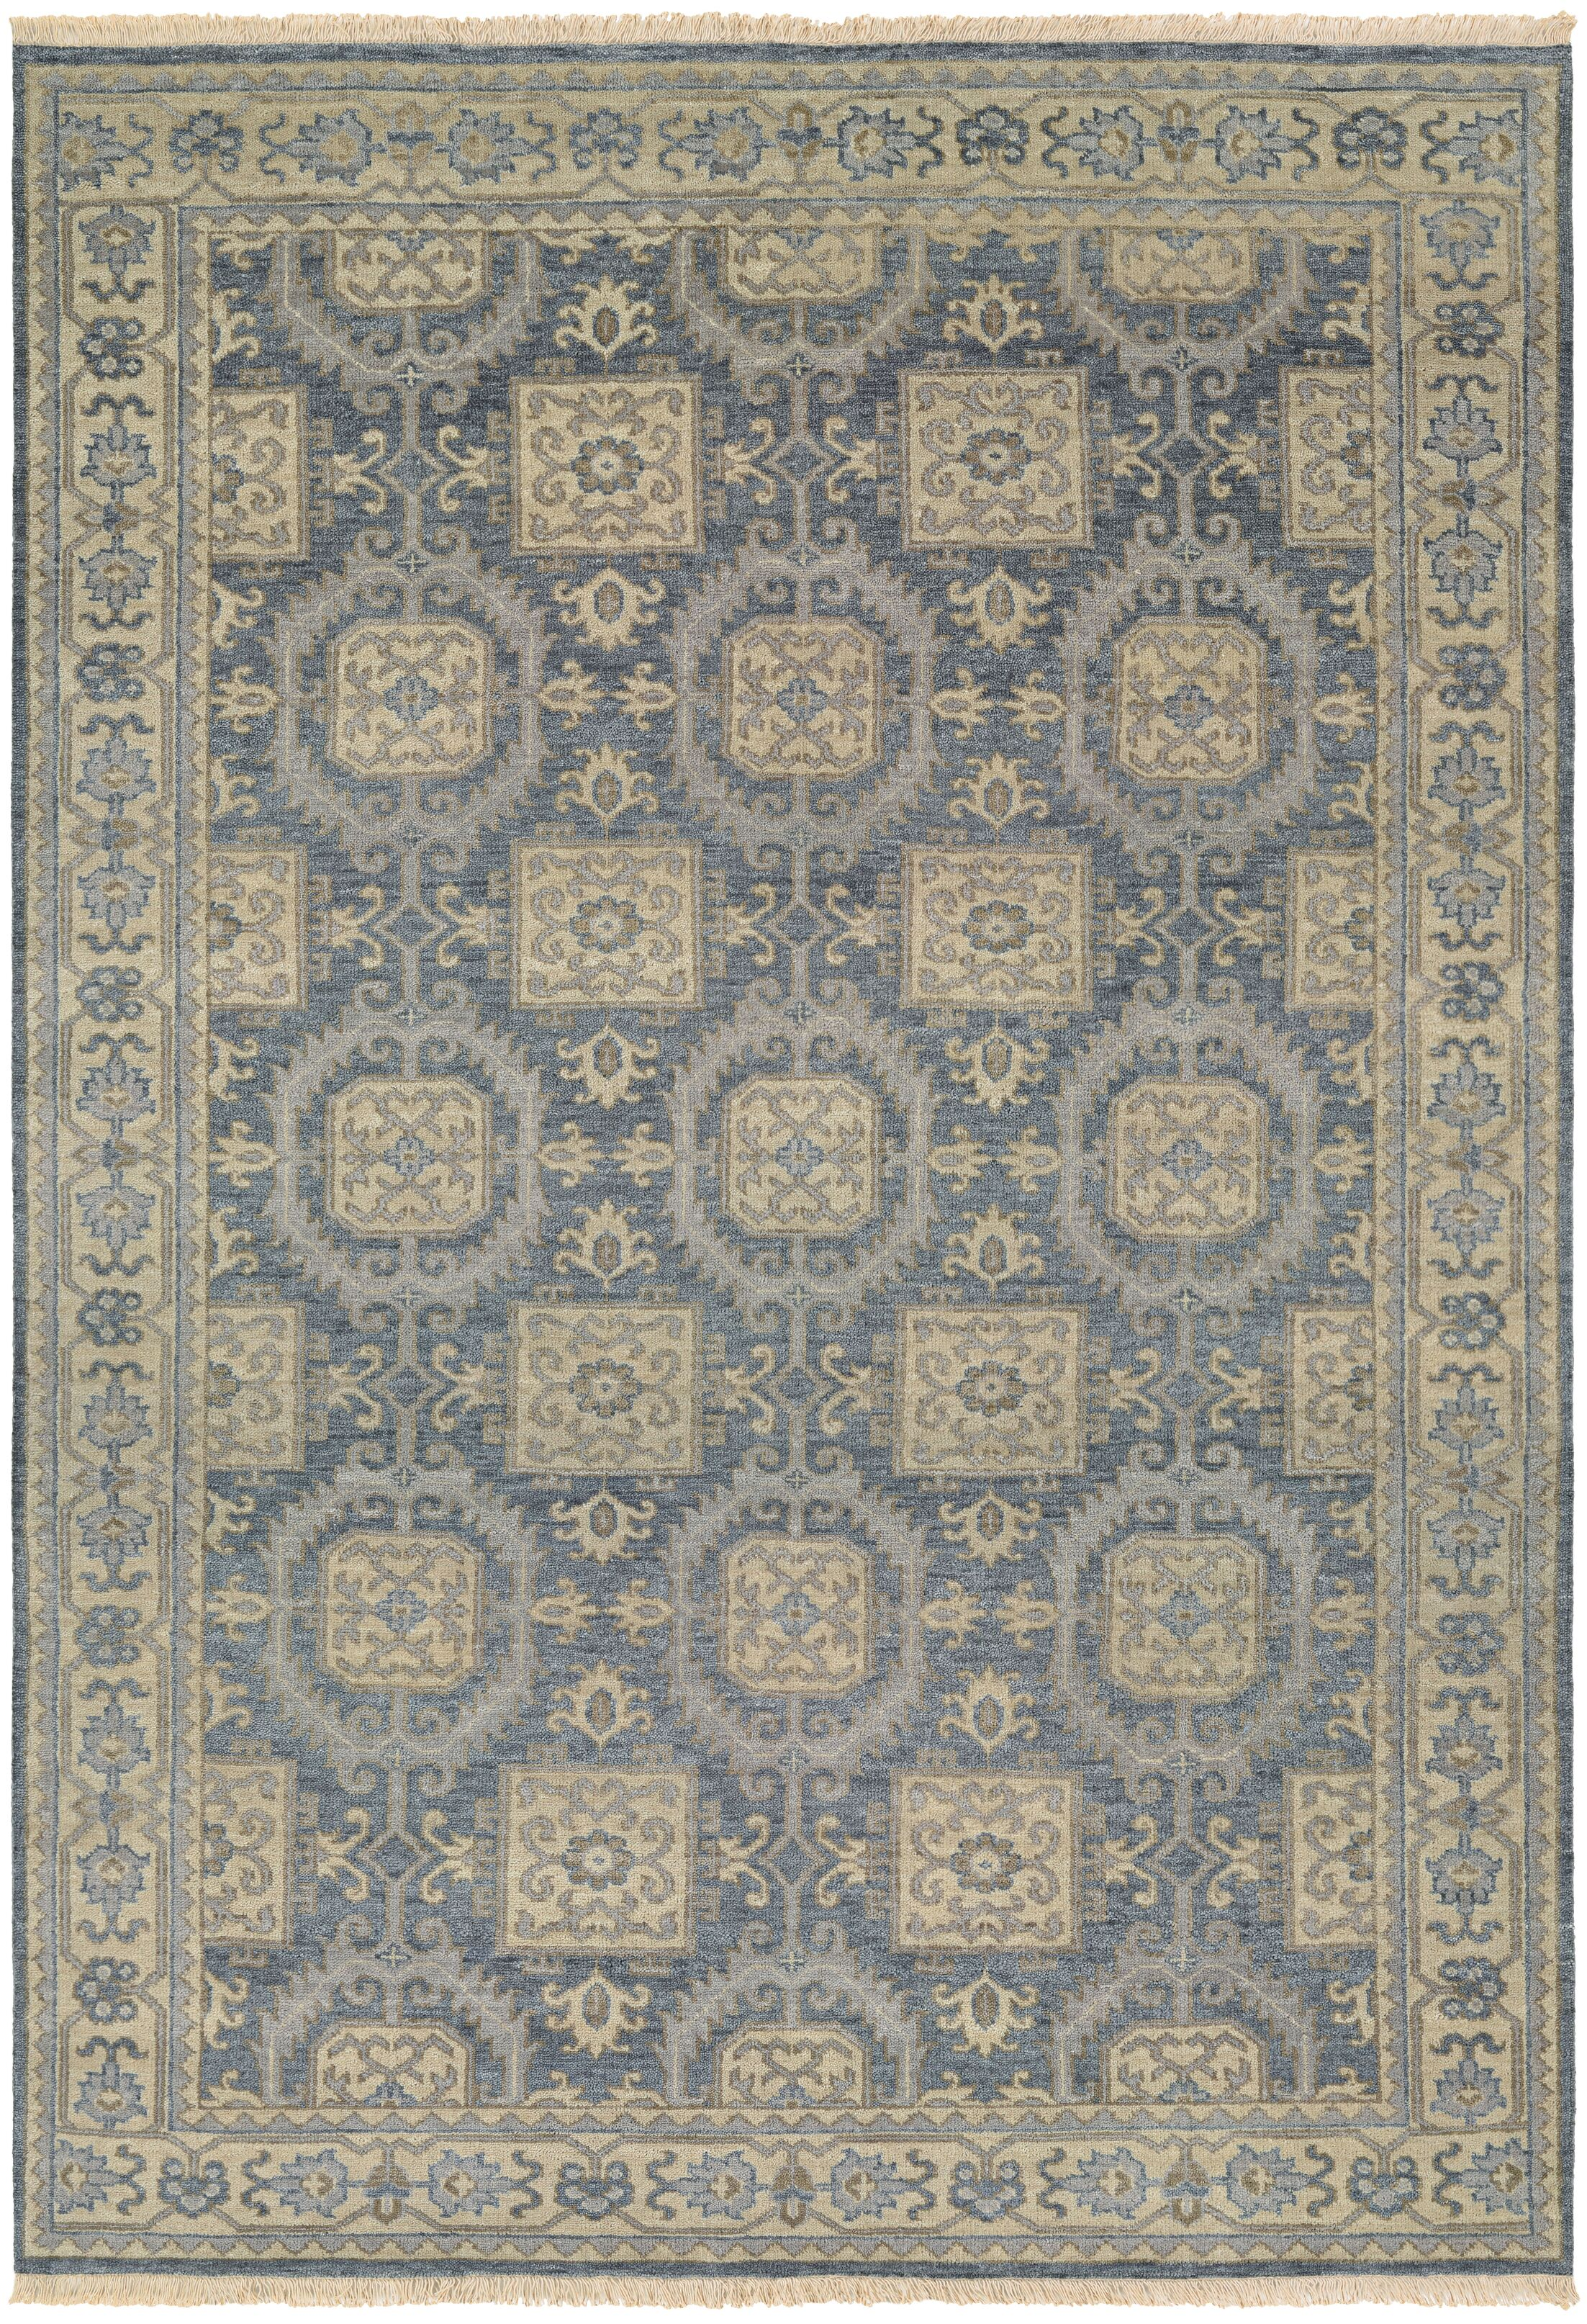 Brian Hand-Knotted Blue/Beige Area Rug Rug Size: Rectangle 5'6